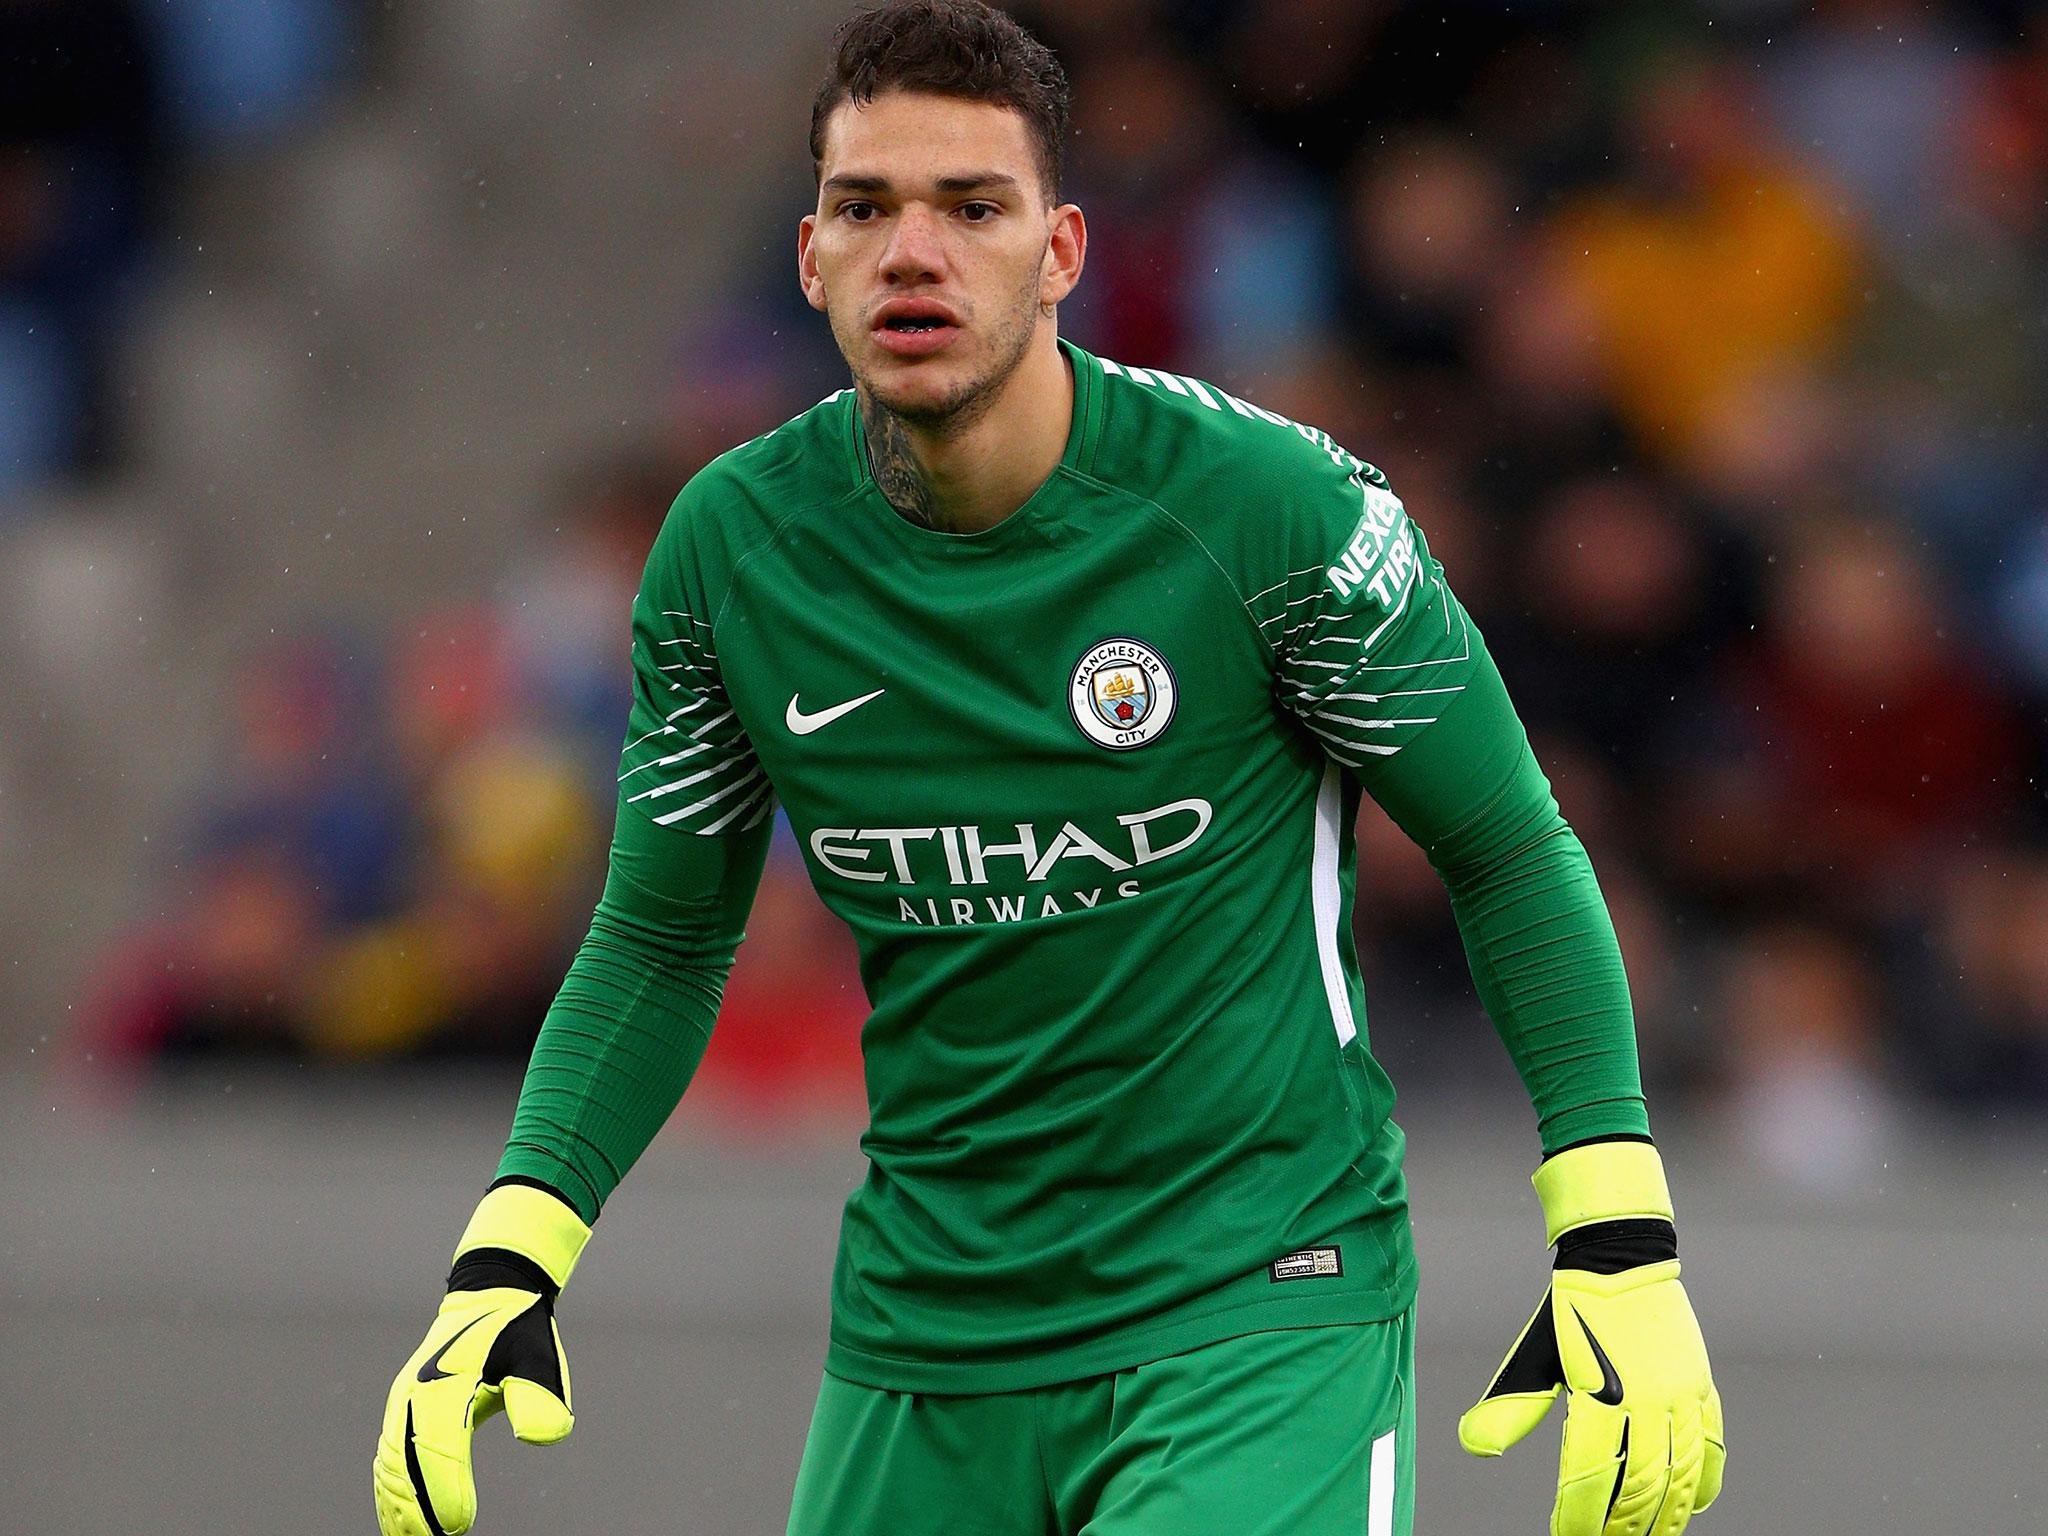 Ederson unfazed by world-record price-tag ahead of debut ...